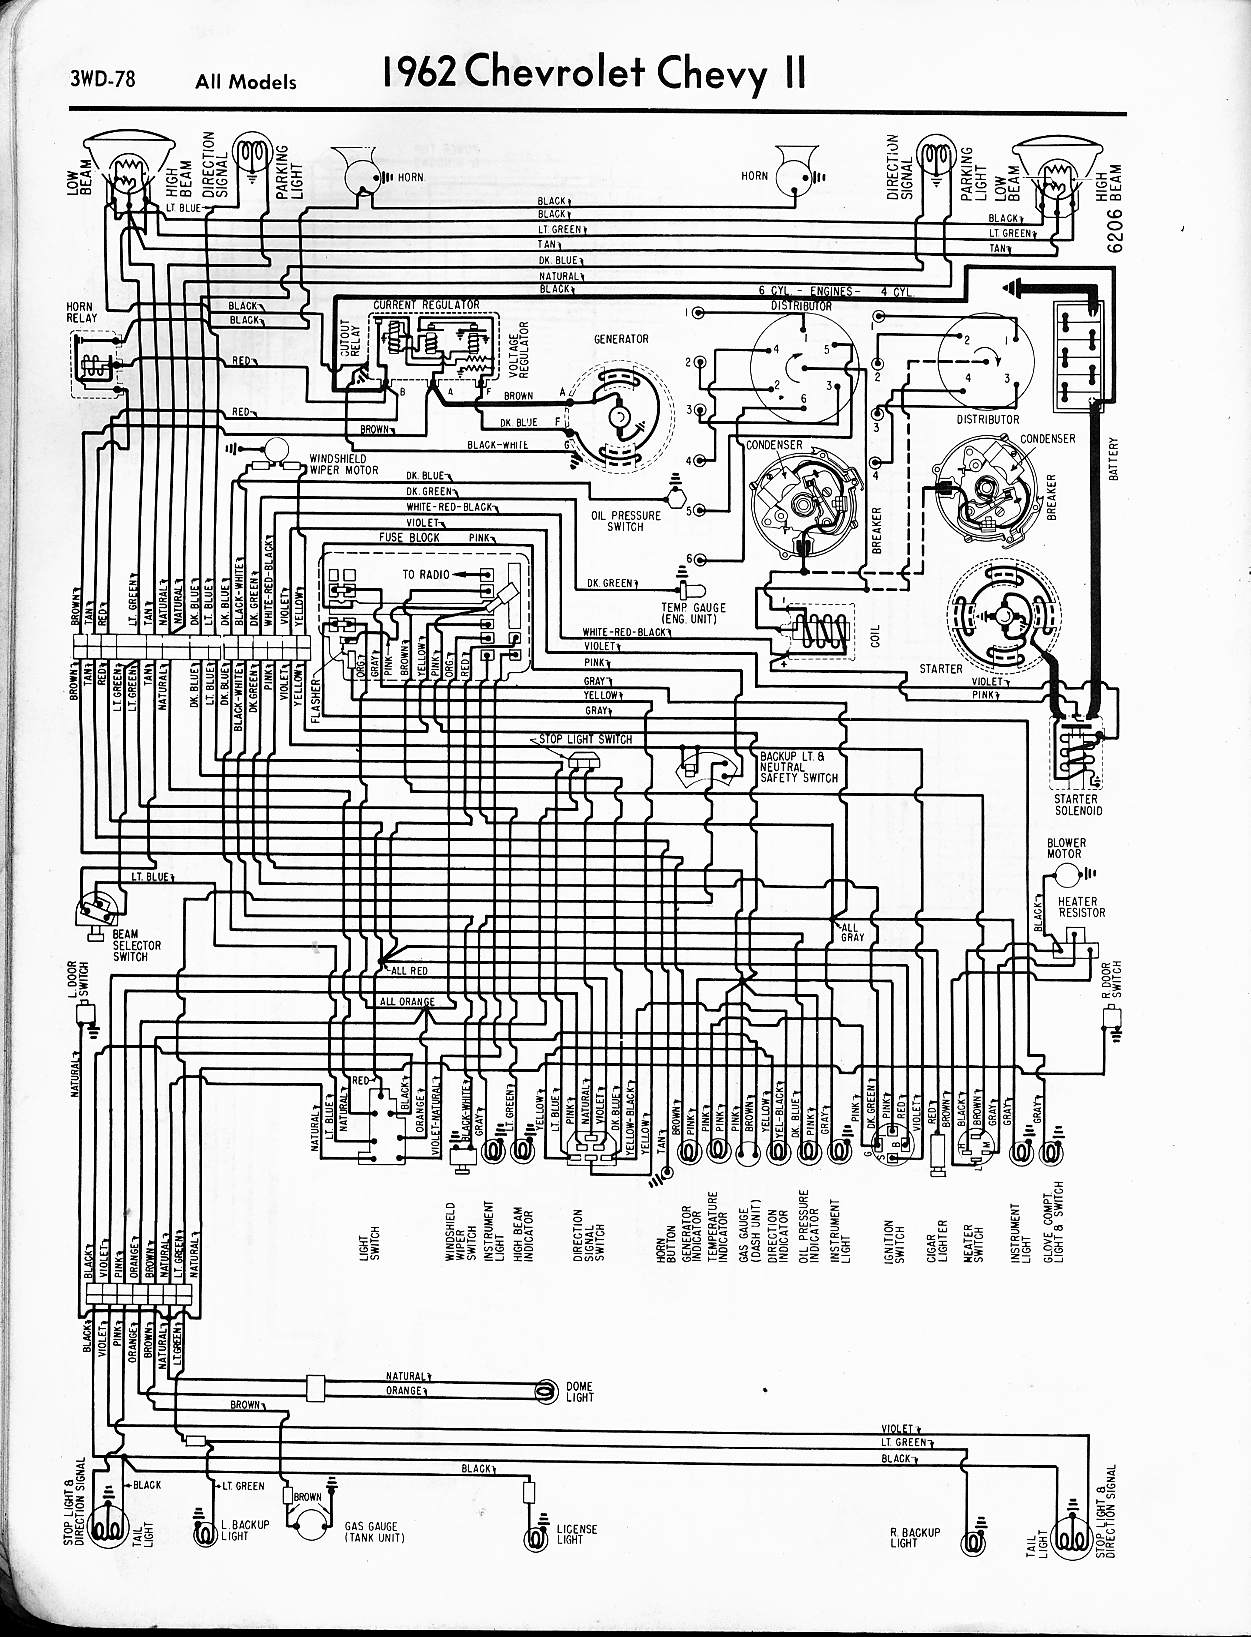 MWireChev62_3WD 078 ford crown victoria steering column diagram besides ford truck on